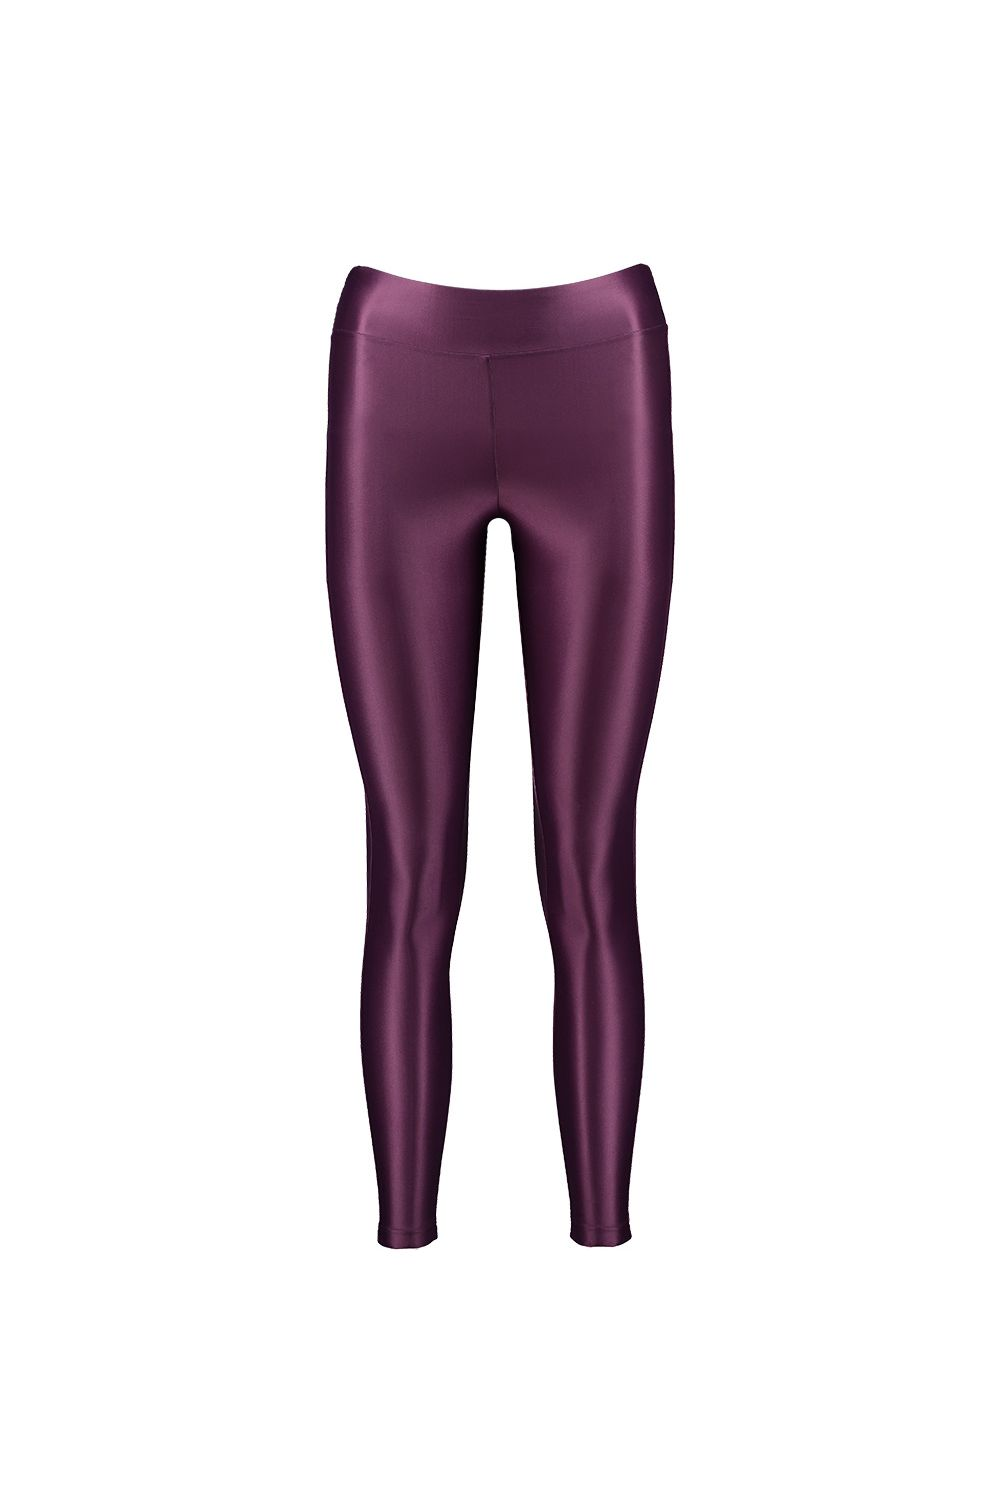 Leggings-Fitness-Karen-Microfibra-V16--1-